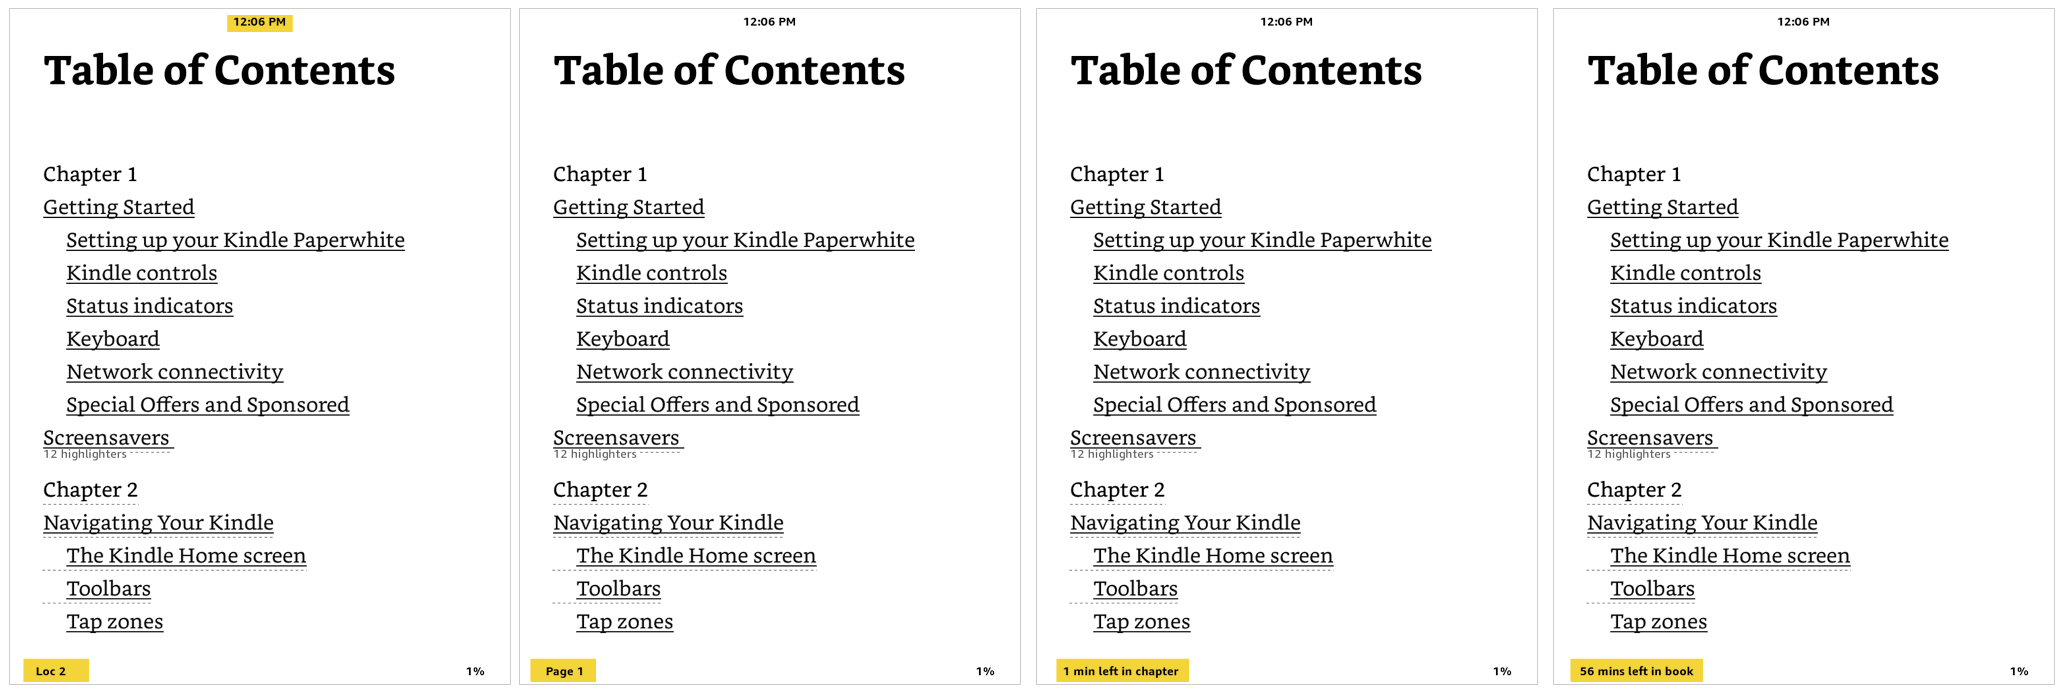 Kindle Reading Progress Per Page and Clock